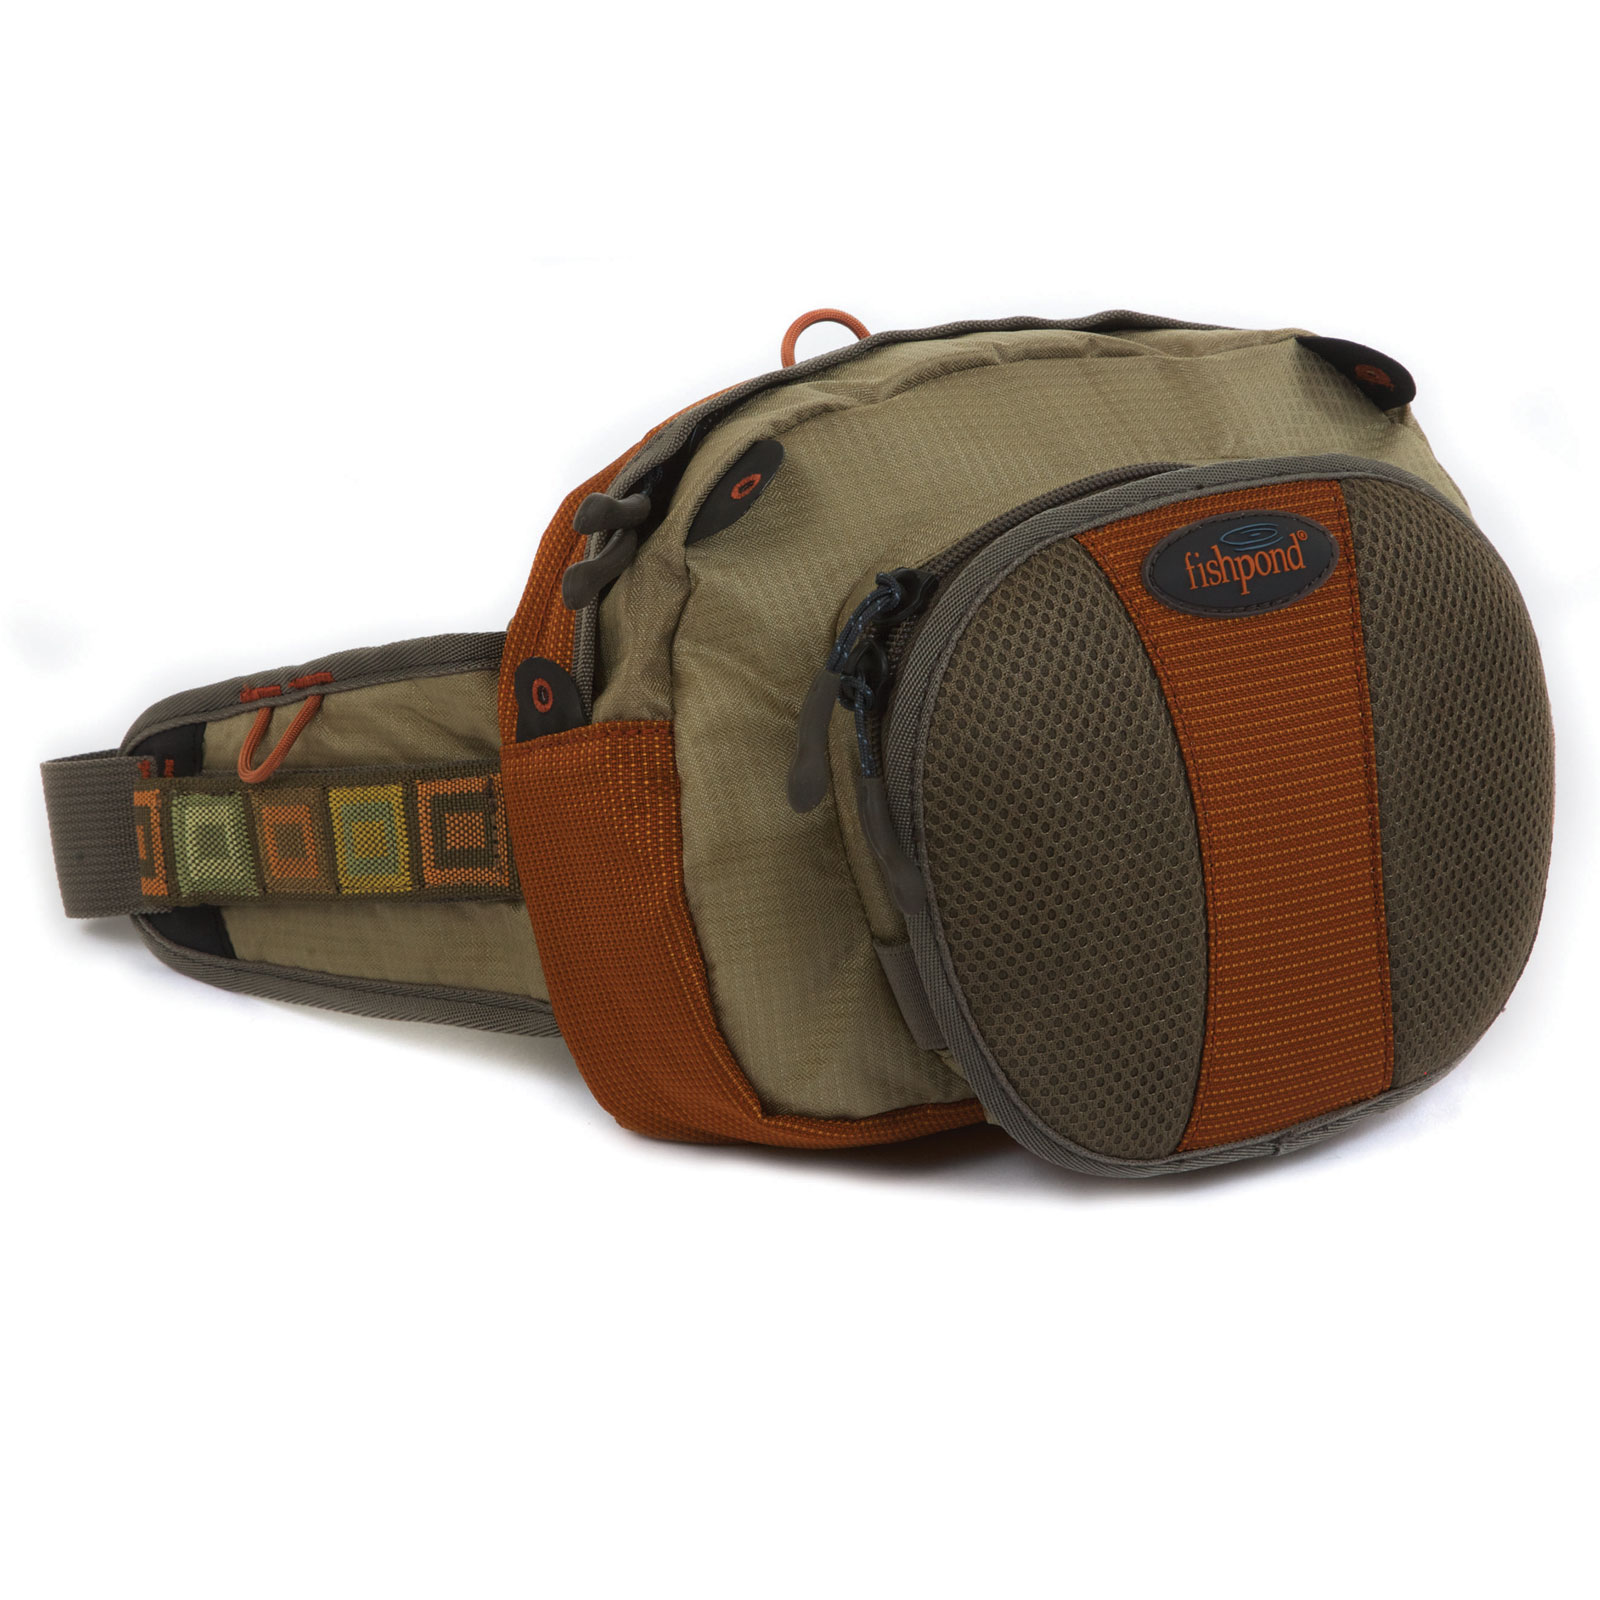 Fishpond arroyo chest pack fly fishing also hip lumbar waist for Fishpond fly fishing